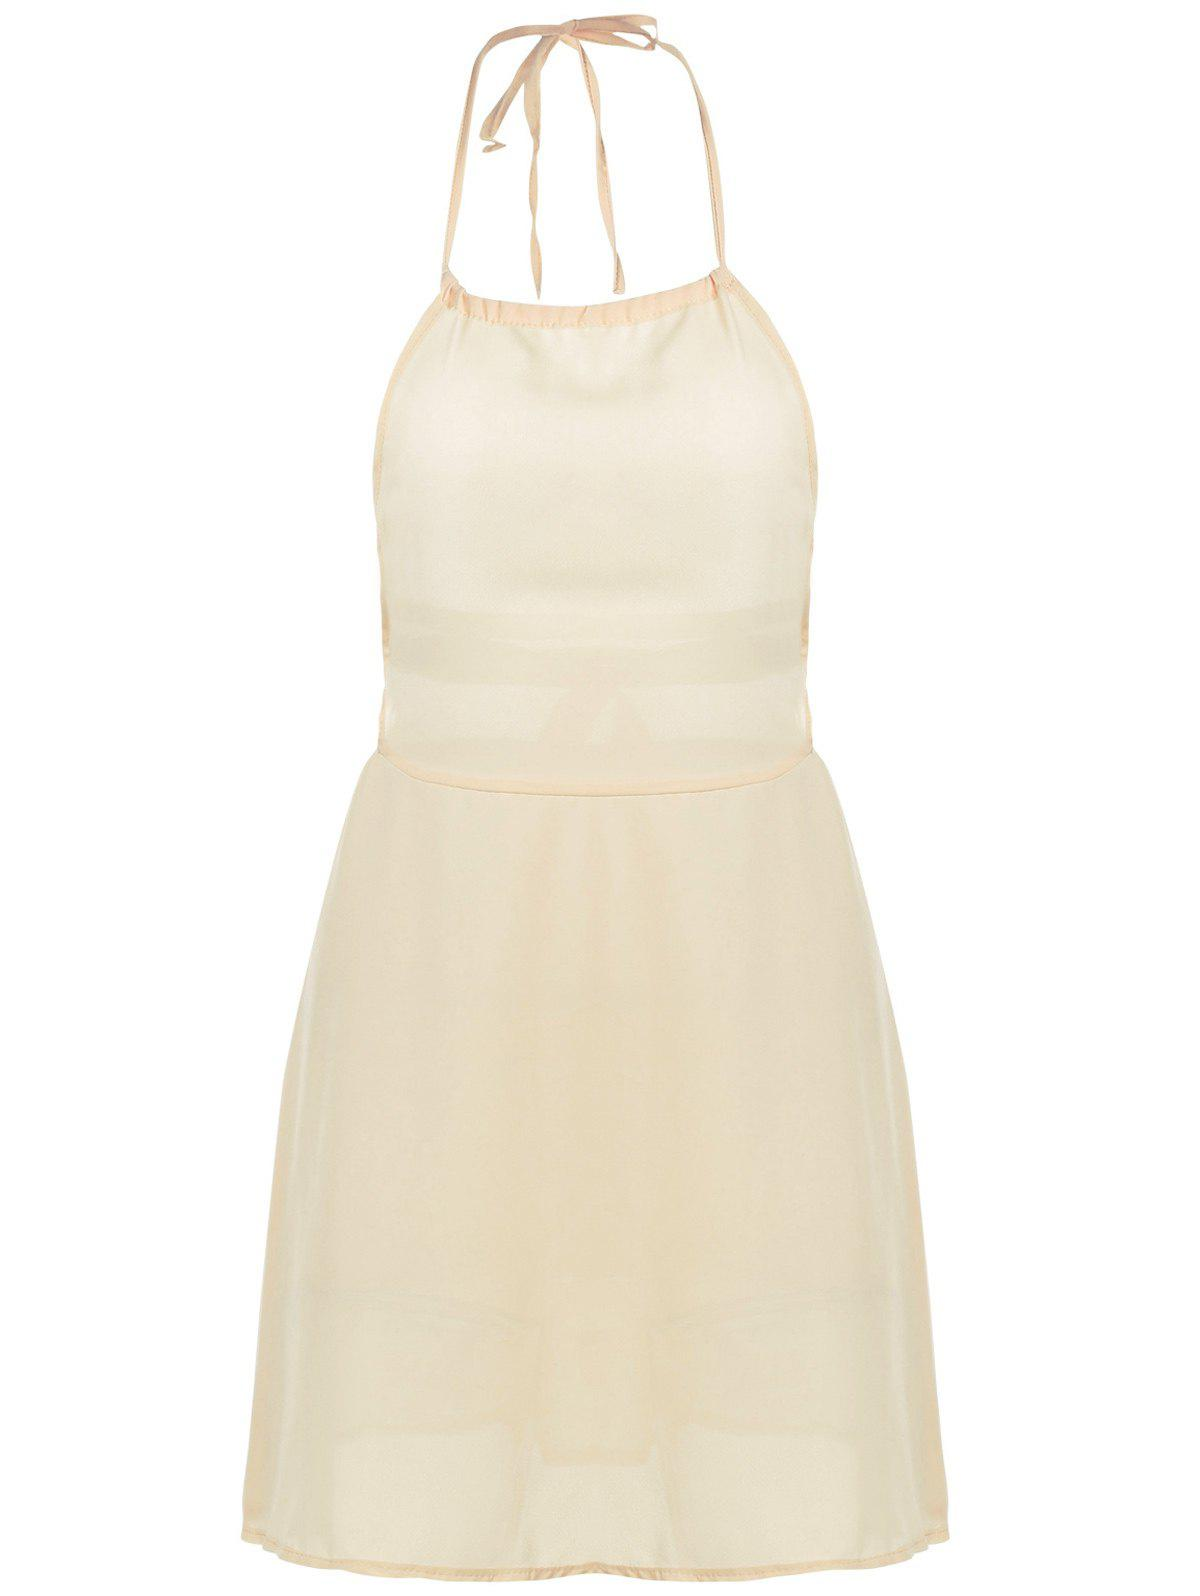 Trendy Solid Color Sleeveless Backless Halter Dress For Women - LIGHT YELLOW M